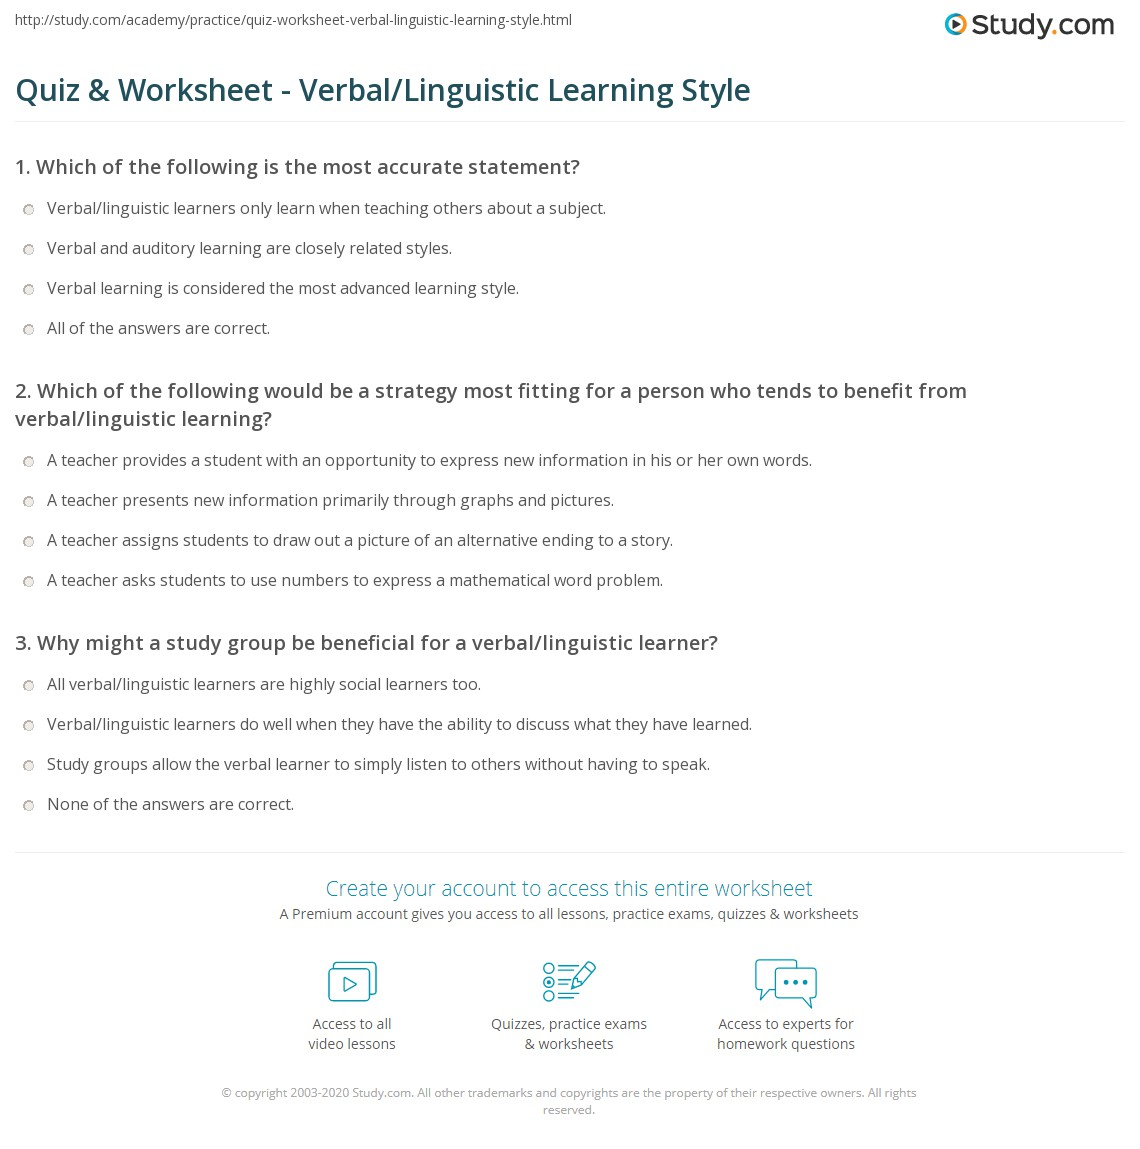 Quiz & Worksheet - Verbal/Linguistic Learning Style | Study.com